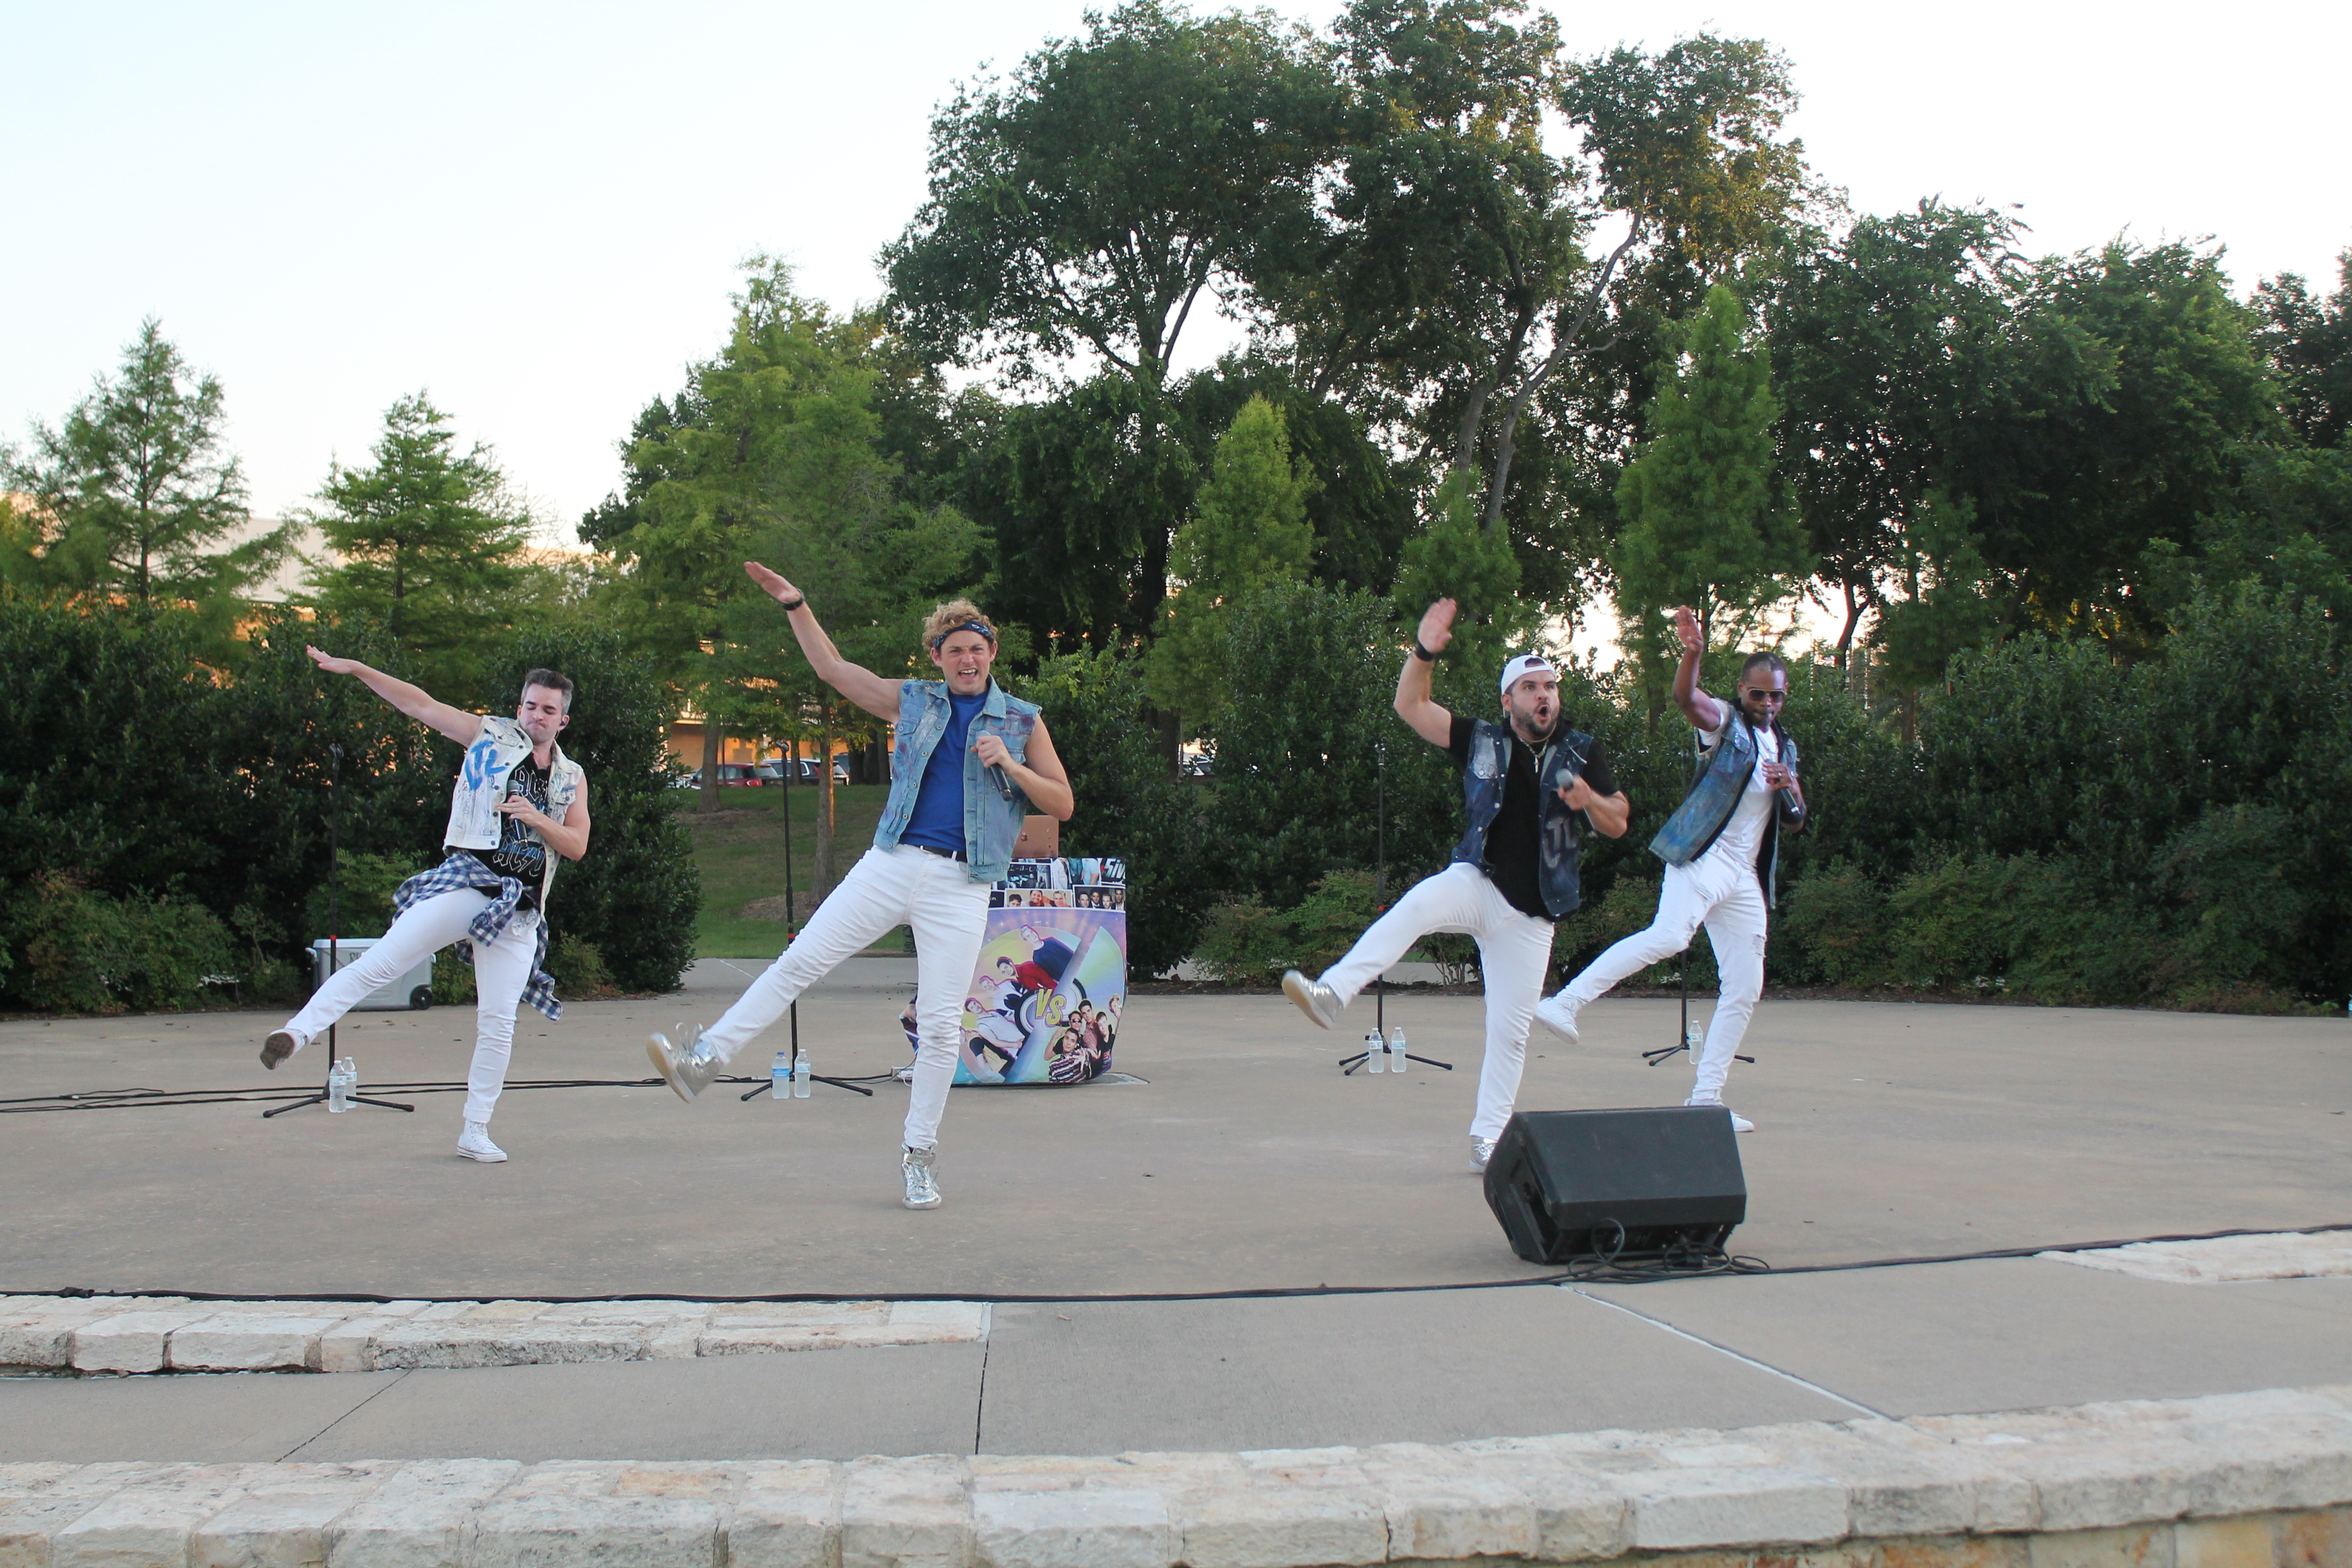 Sounds at Sundown continues with boy band tribute act